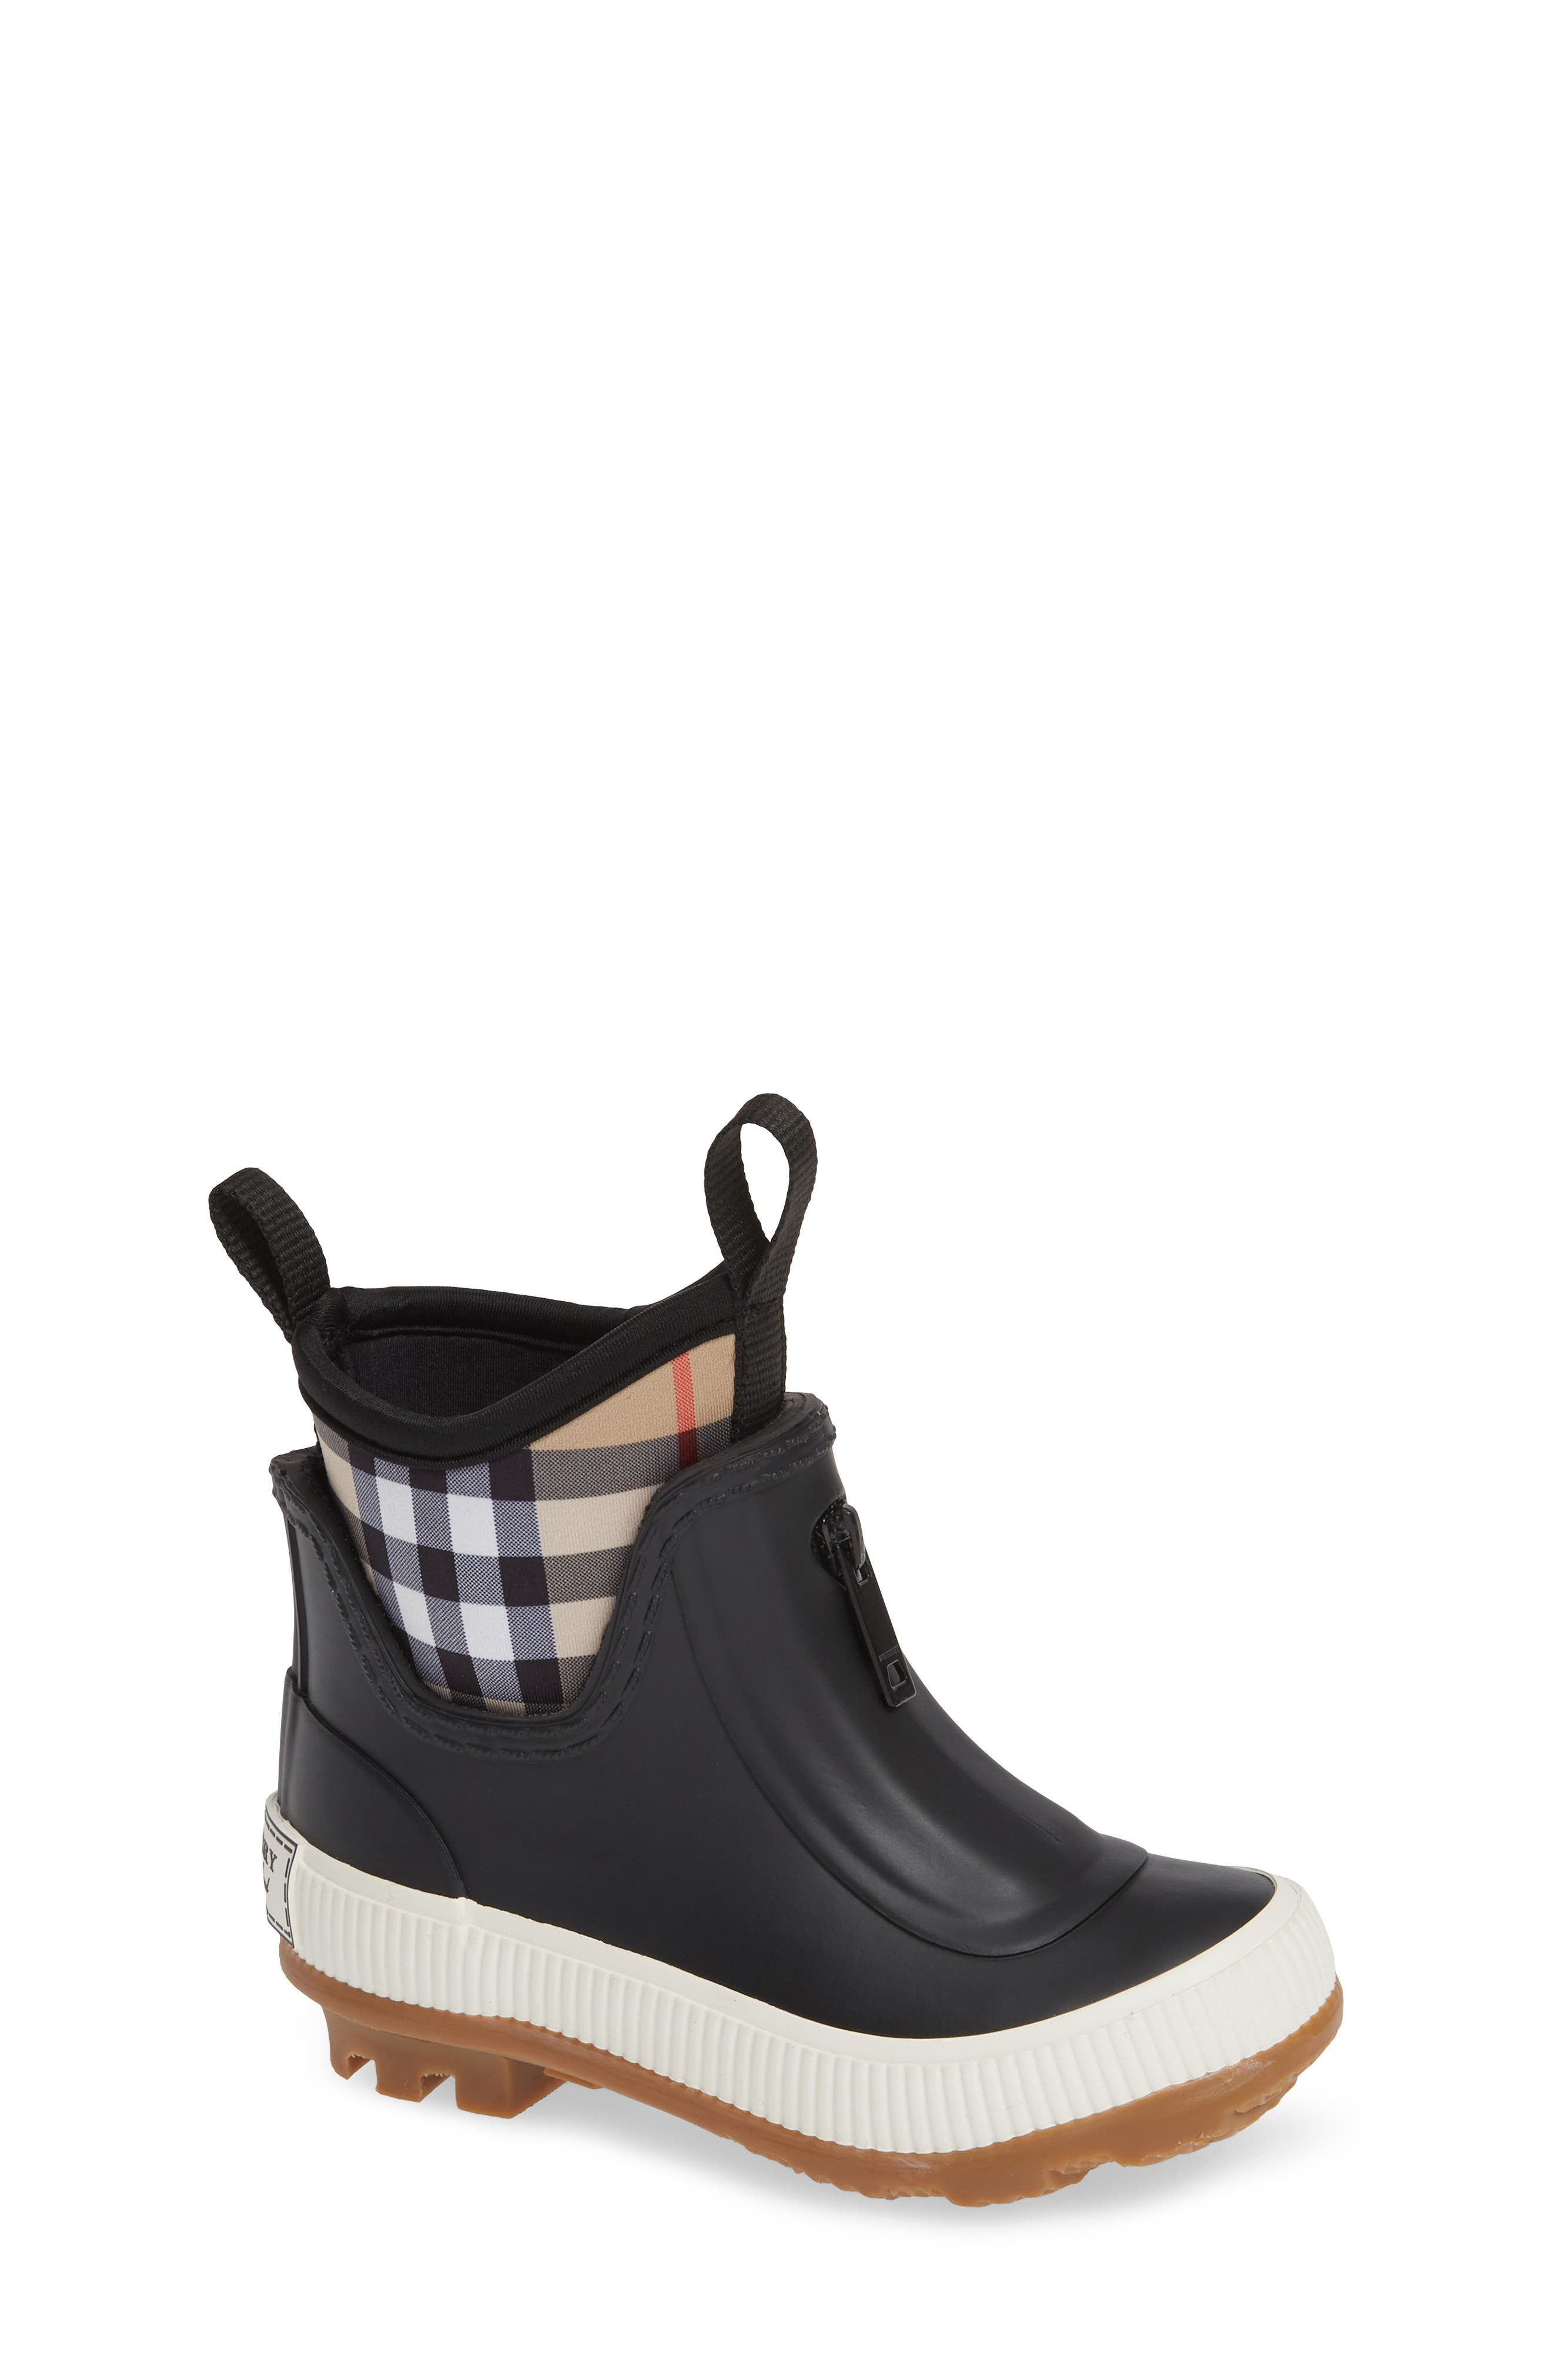 BURBERRY Flinton Waterproof Rain Boot, Main, color, BLACK